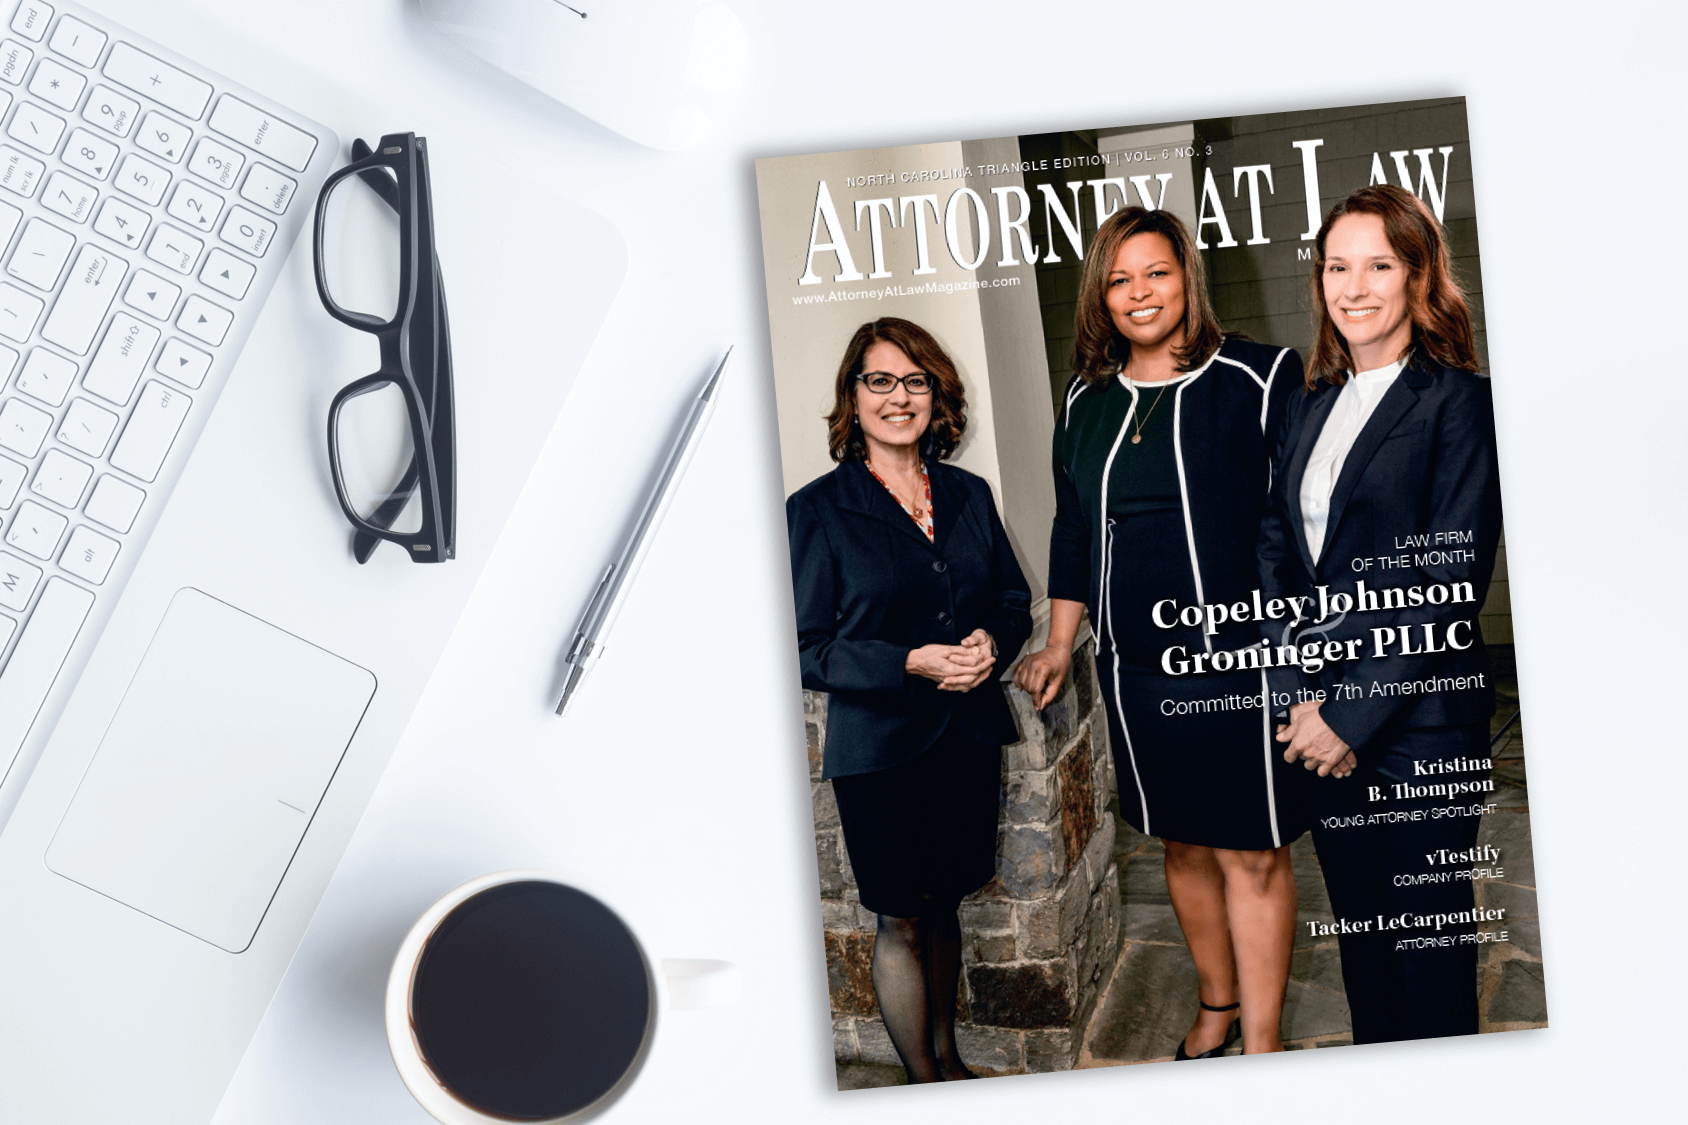 Attorney at Law Magazine Phoenix